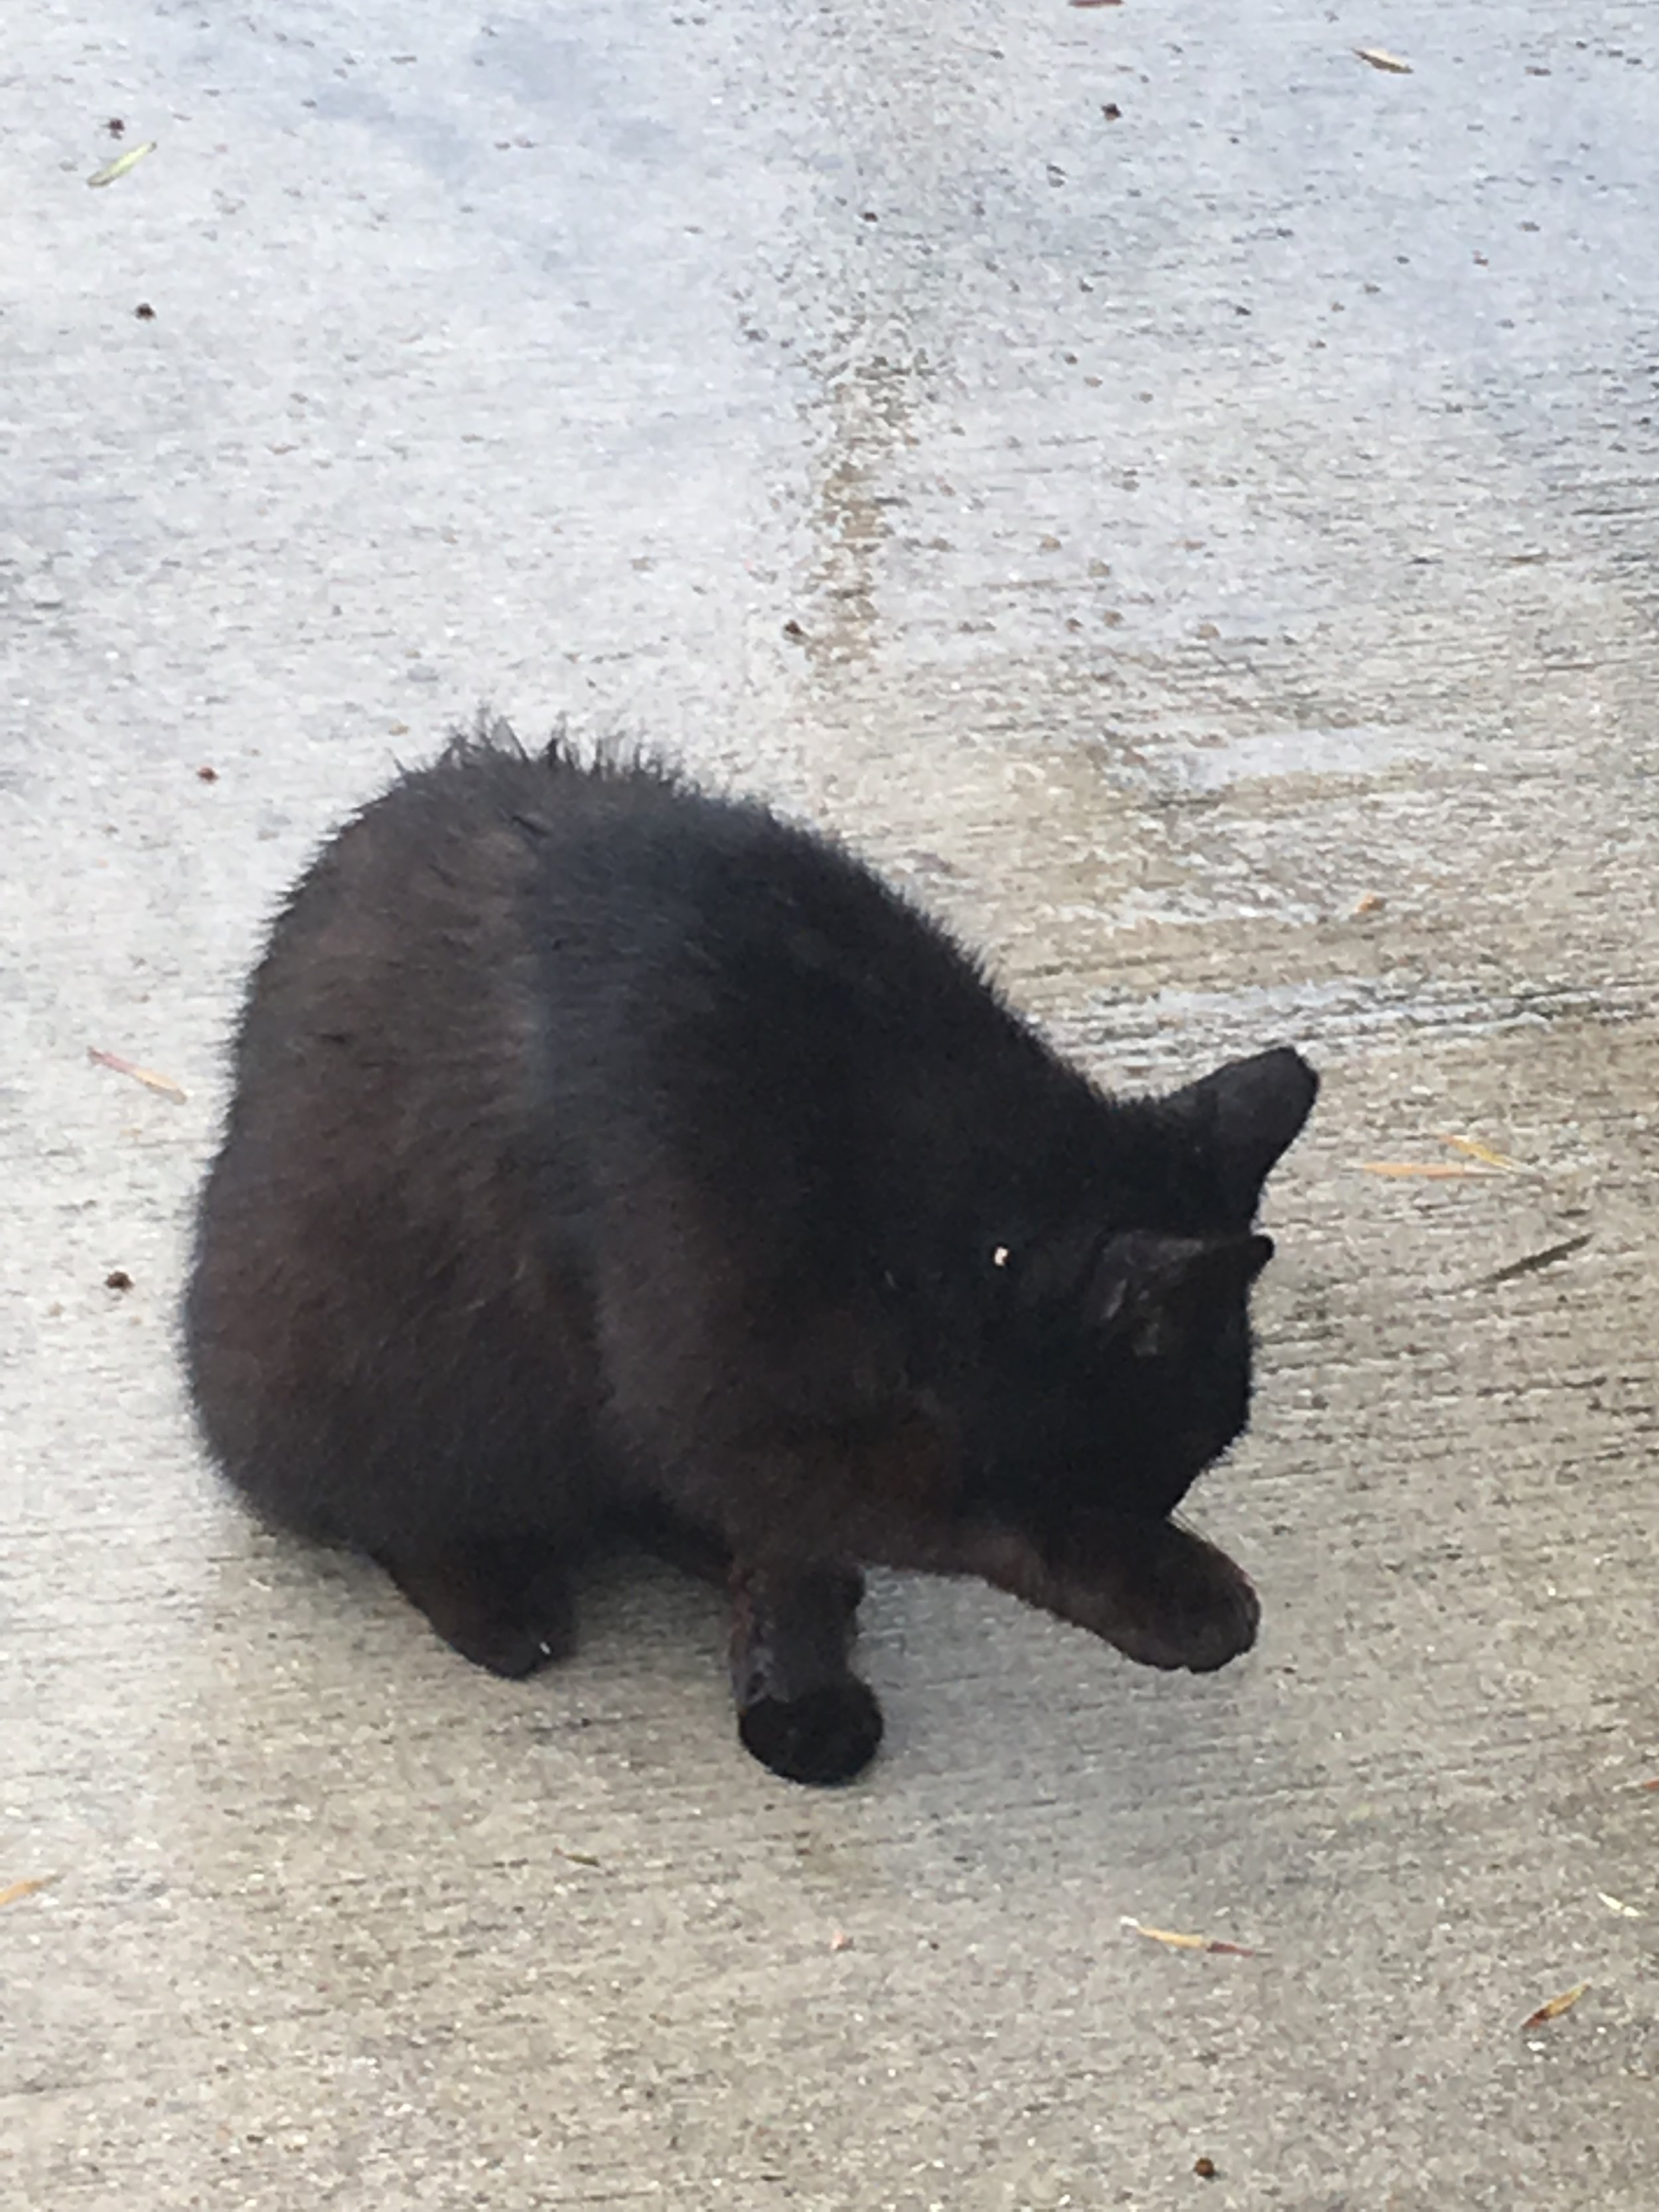 Random friendly af black cat on campus crossed my path, which led me to buy a car this week - can't even explain how my brain works